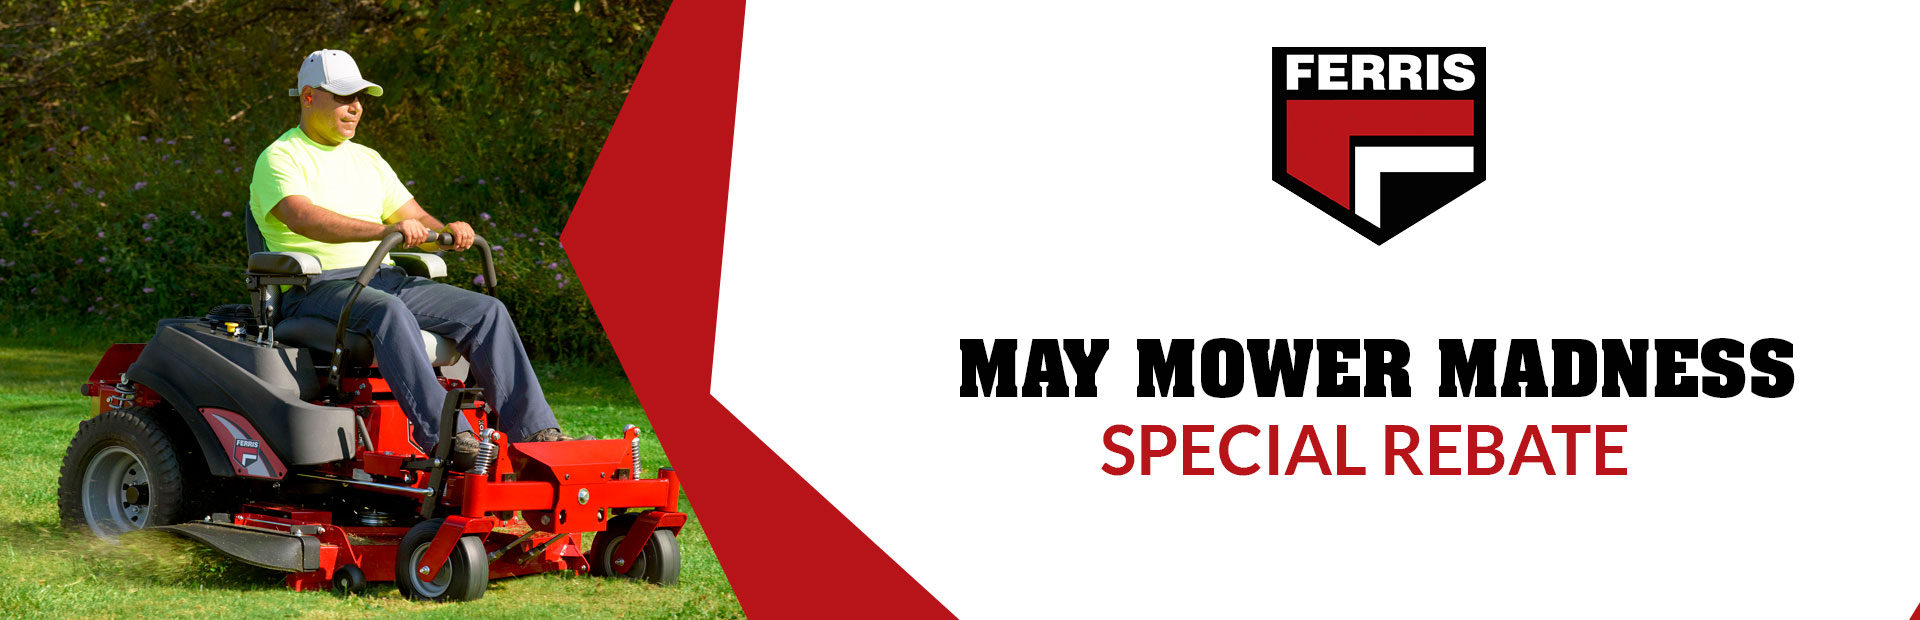 Ferris: May Mower Madness Special Rebate